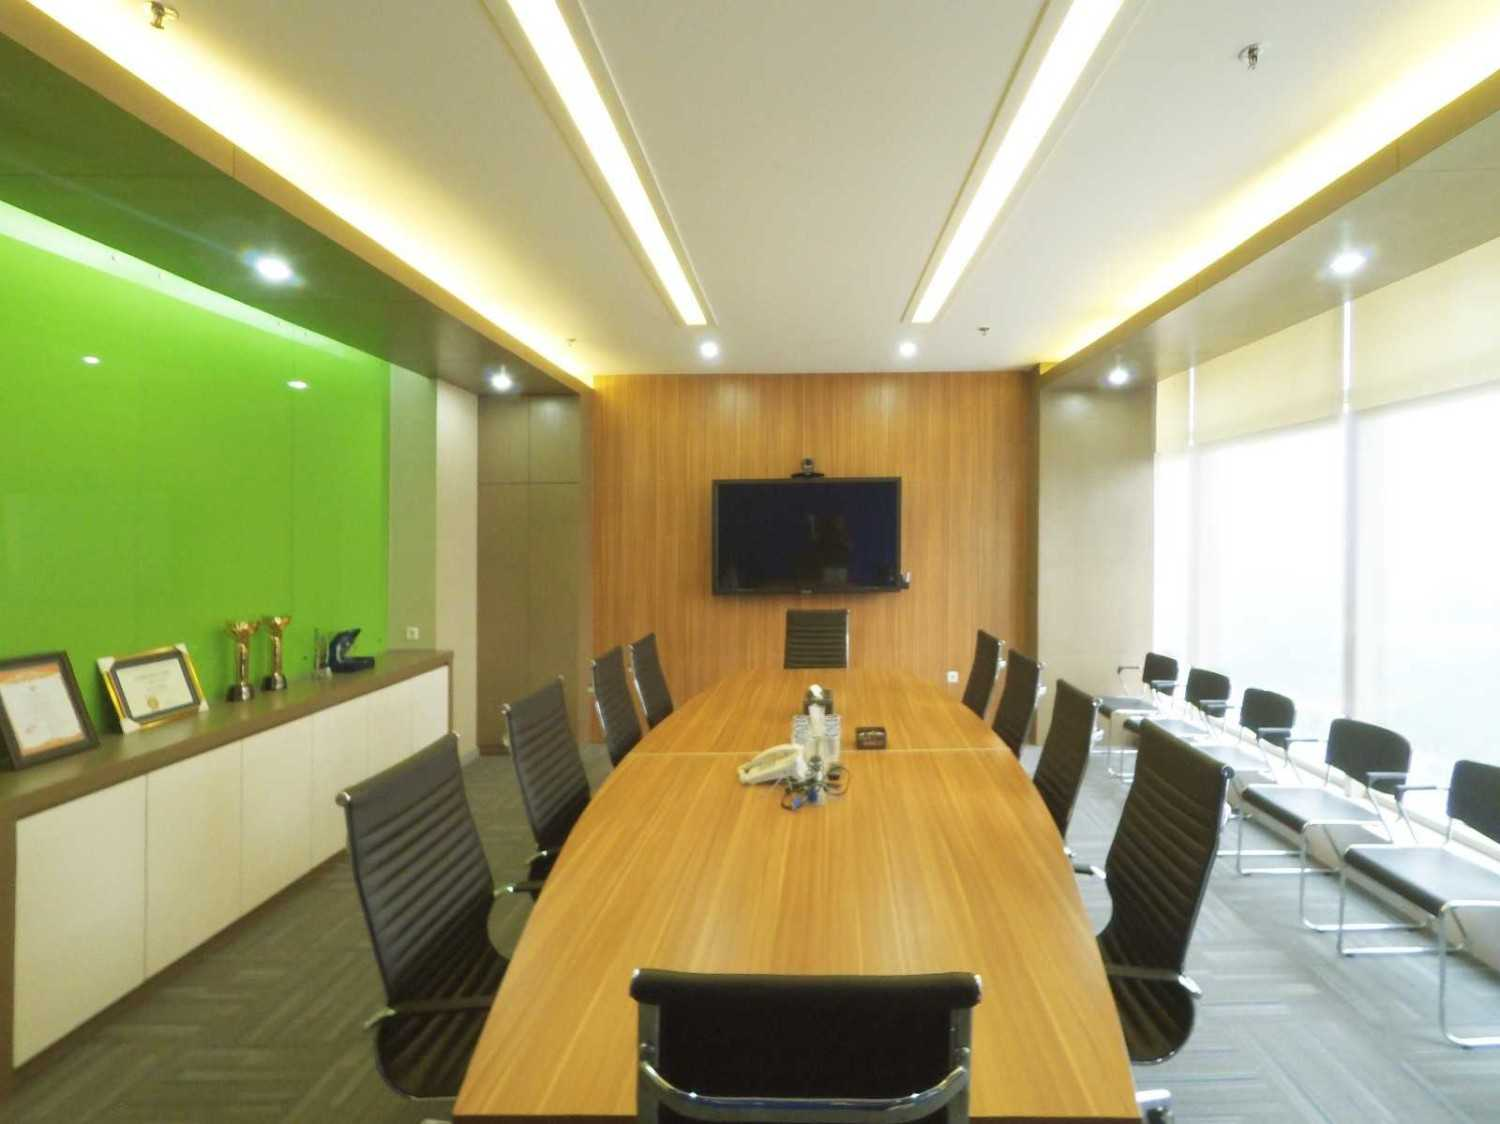 Arkadia Works Sekar Bumi Office Renovation Plaza Asia 21St Floor Plaza Asia 21St Floor Meeting Room  14078